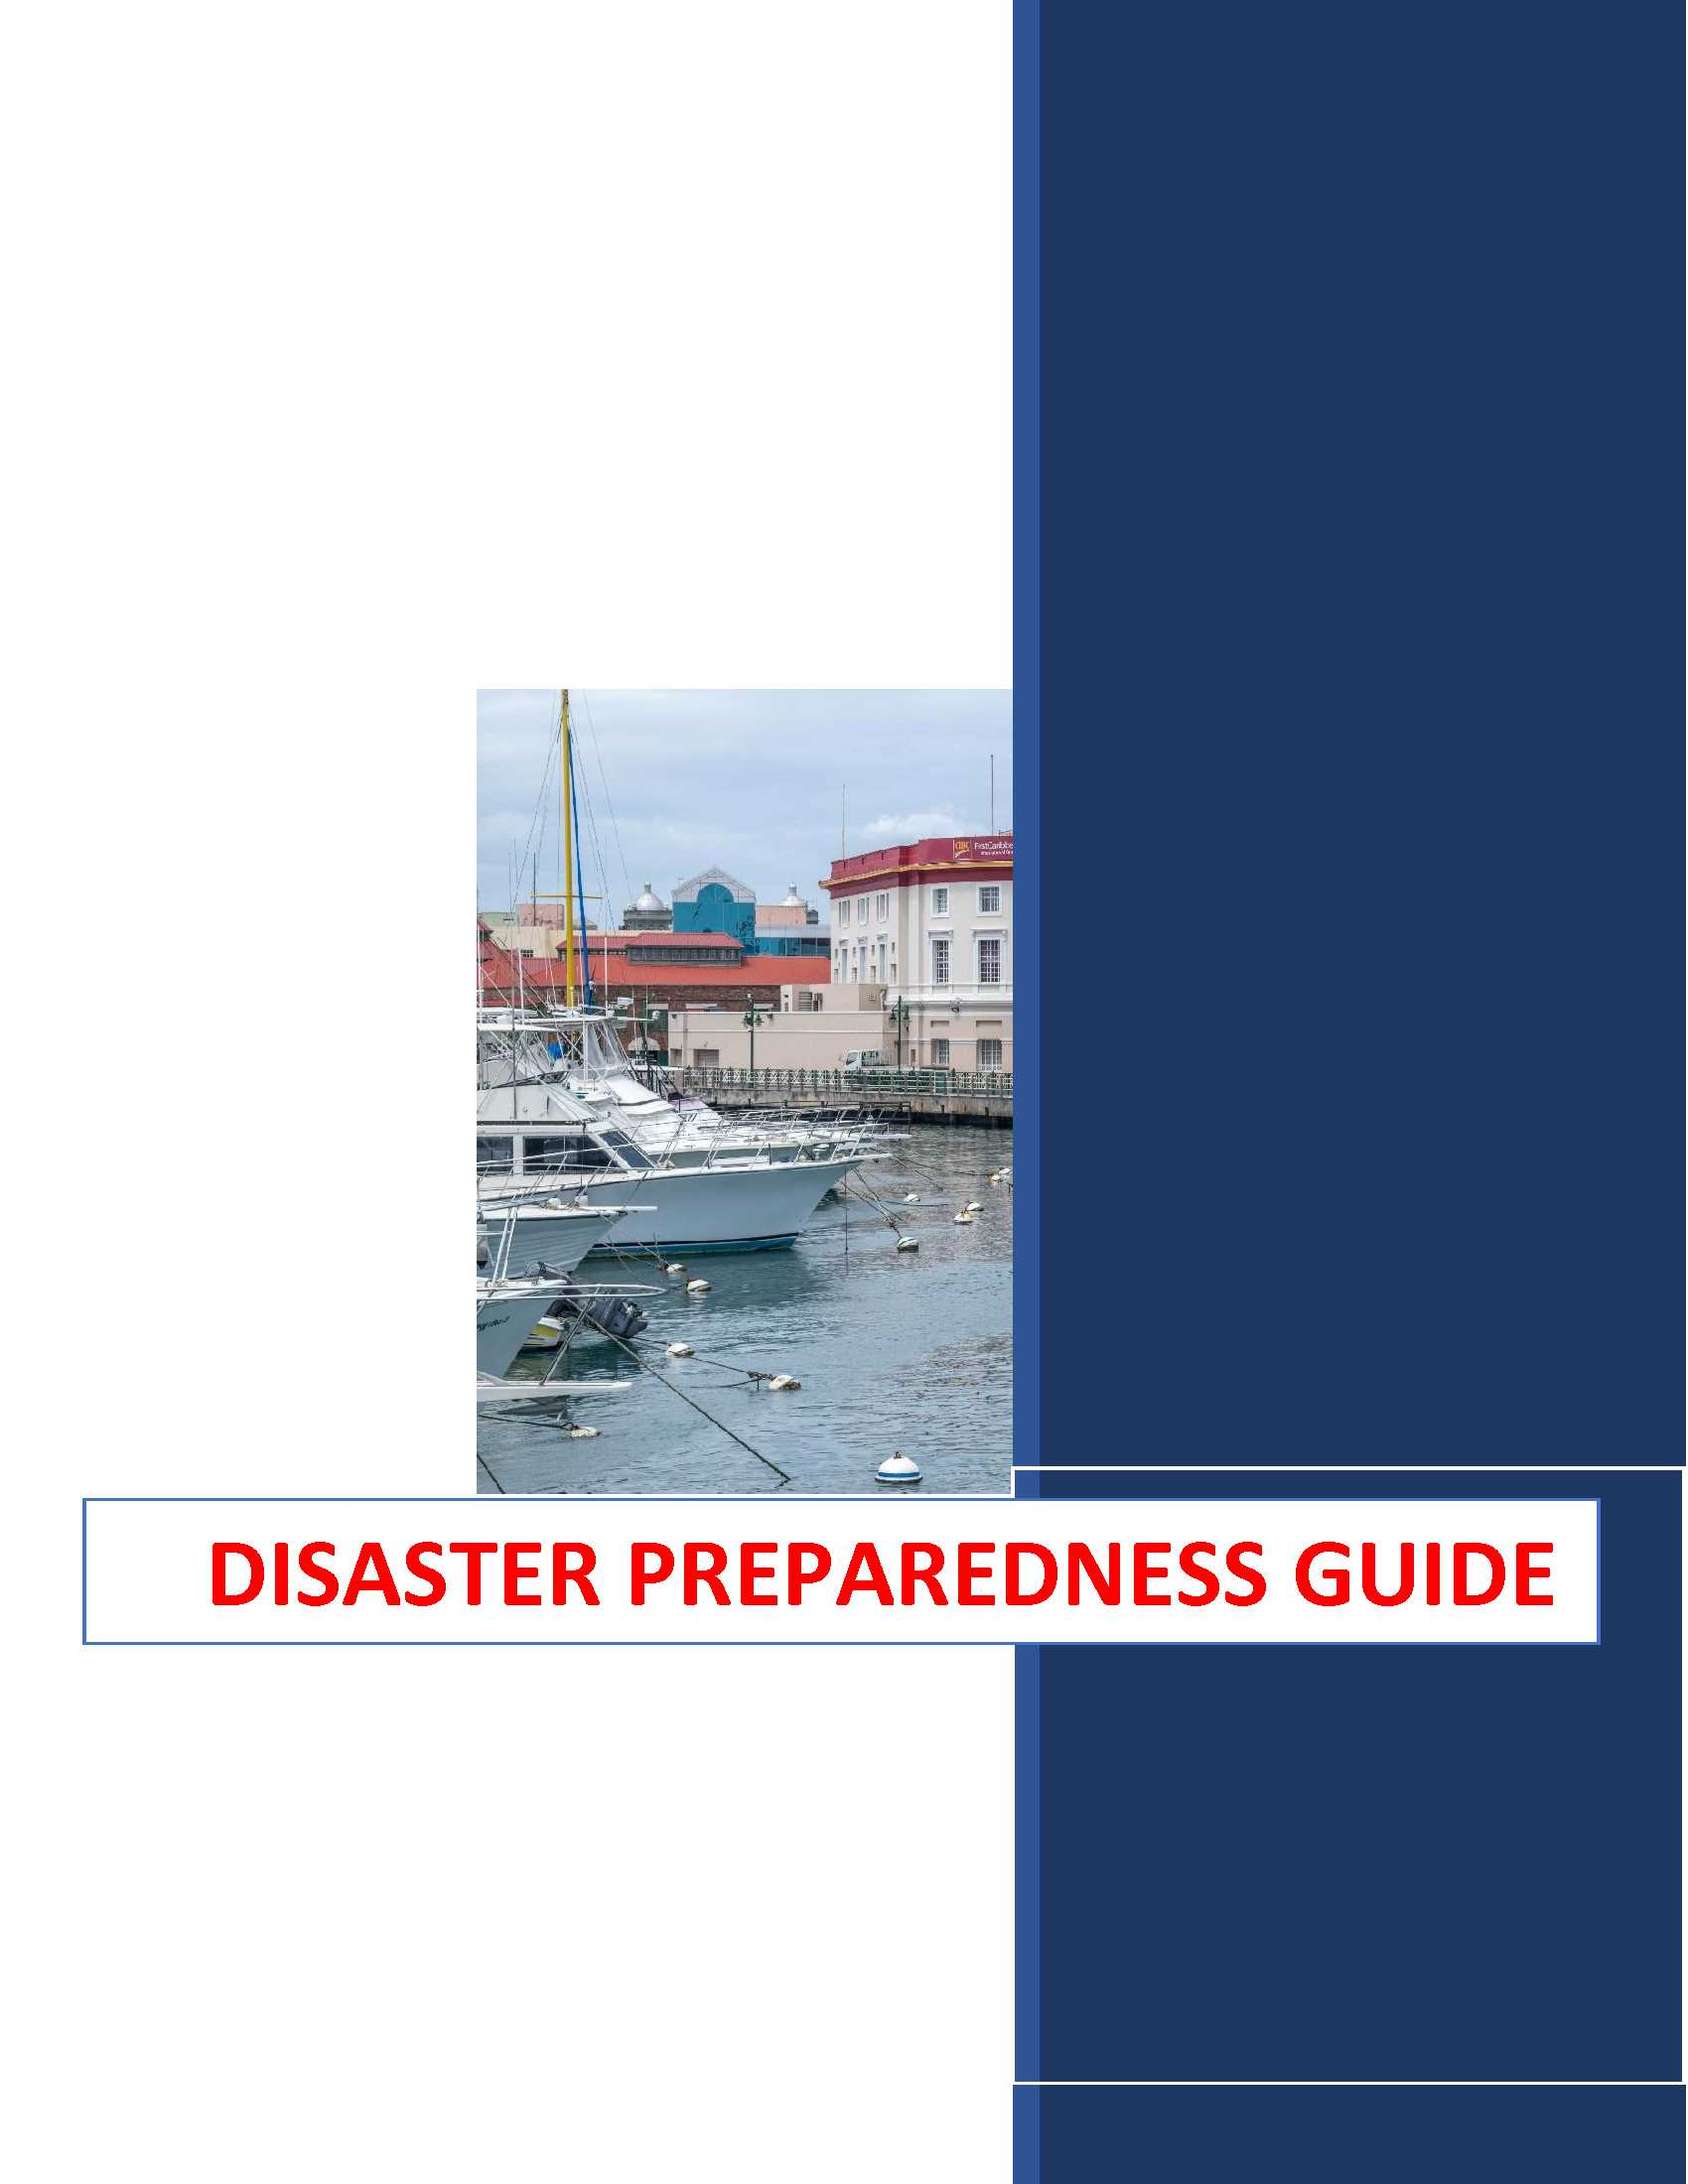 Saving Our Selves: A Disaster Preparedness Guide